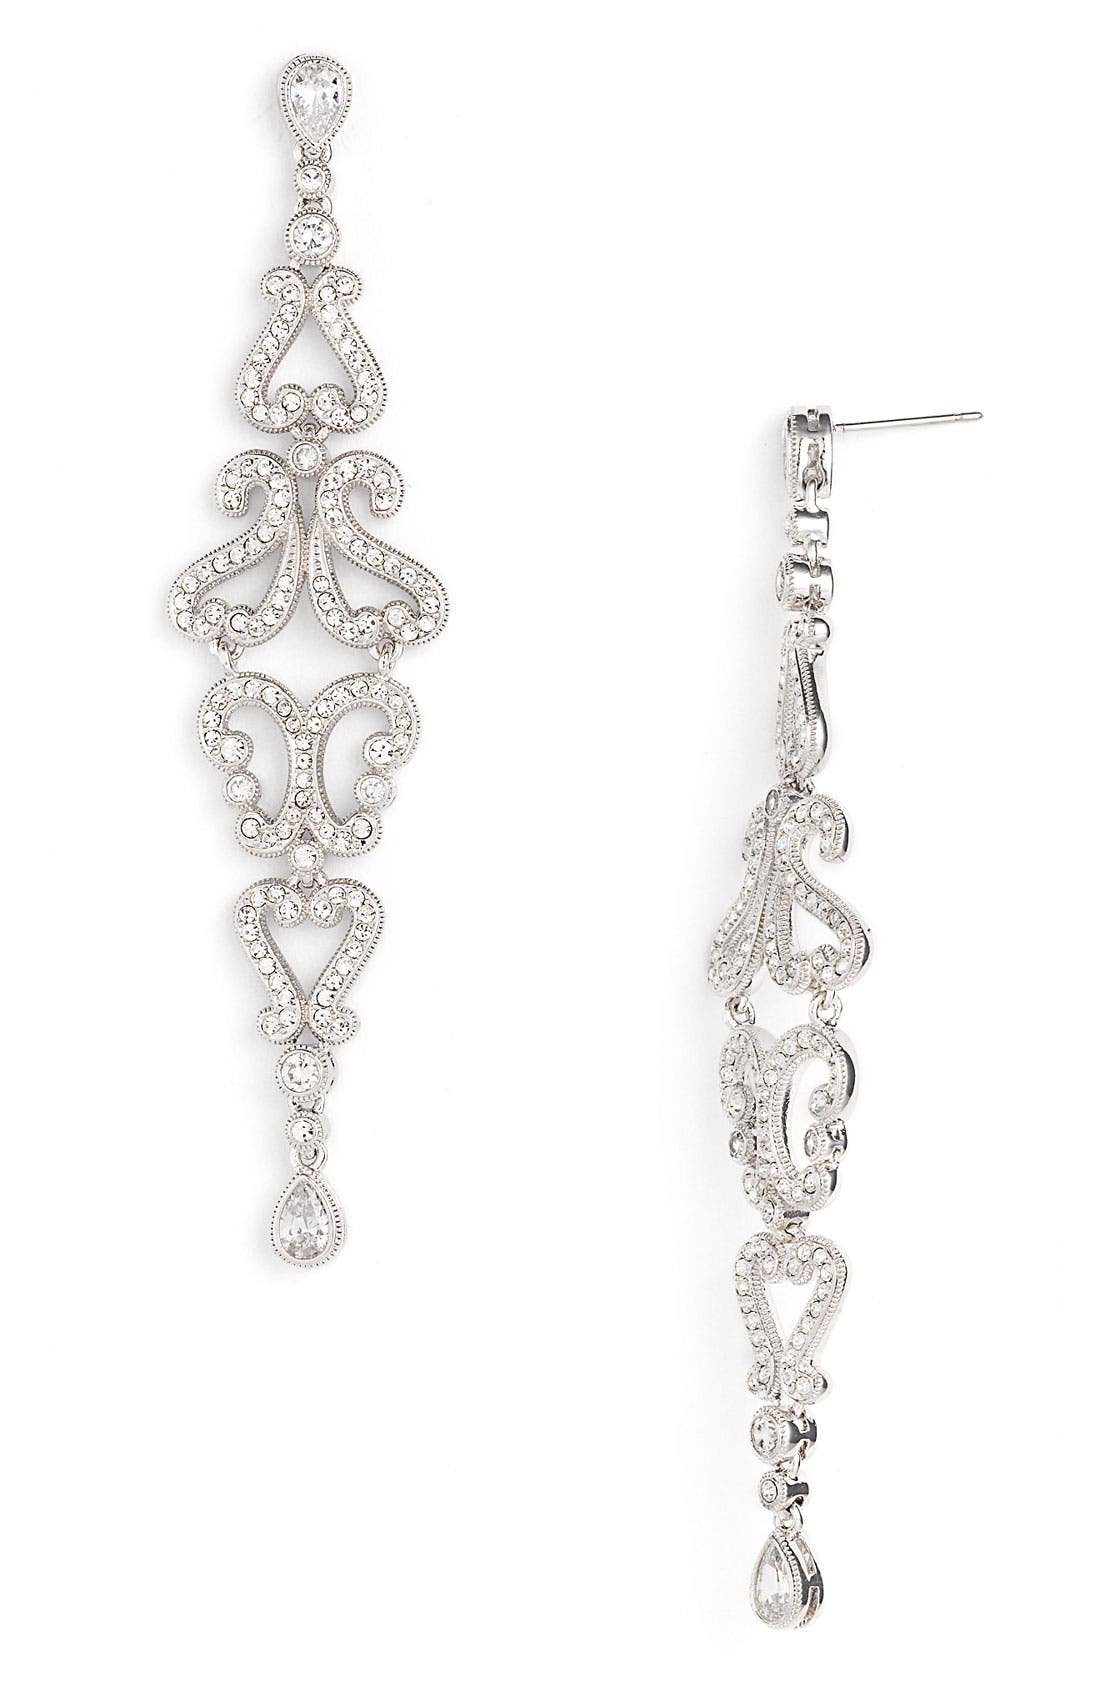 Main Image - Nadri Linear Filigree Earrings (Nordstrom Exclusive)